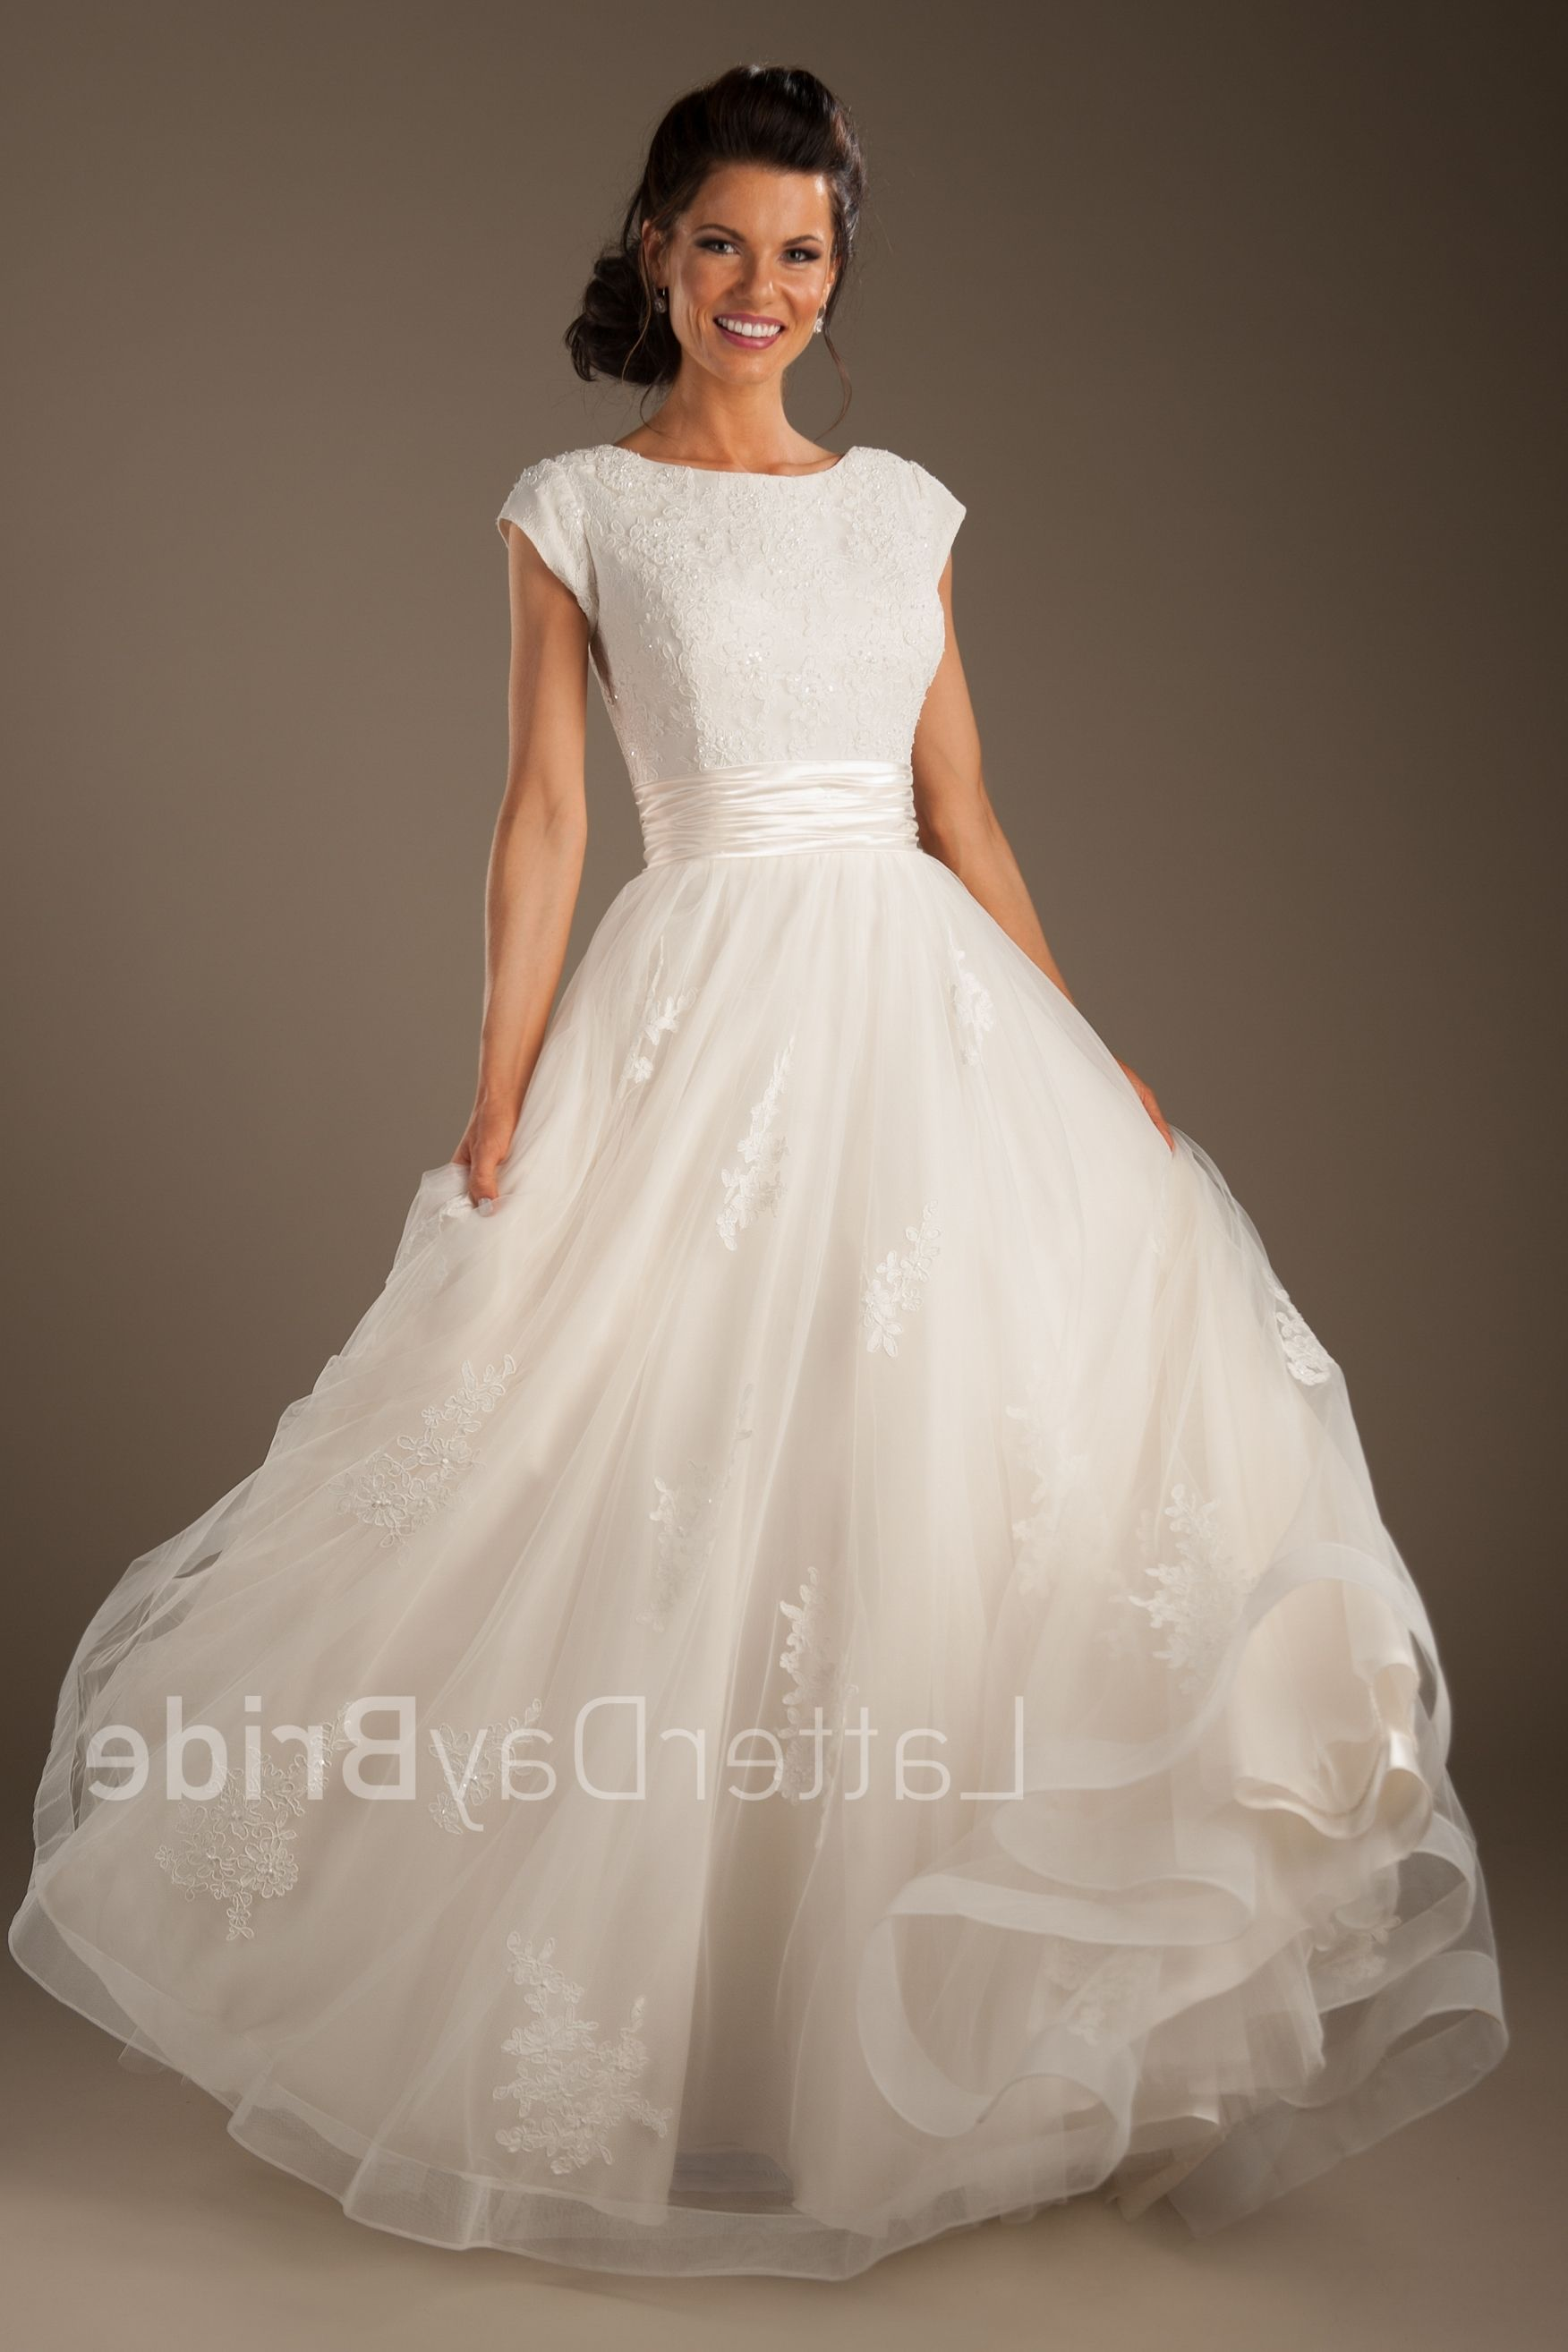 Inexpensive wedding dresses mesa az affordable wedding ideas inexpensive wedding dresses mesa az ombrellifo Image collections